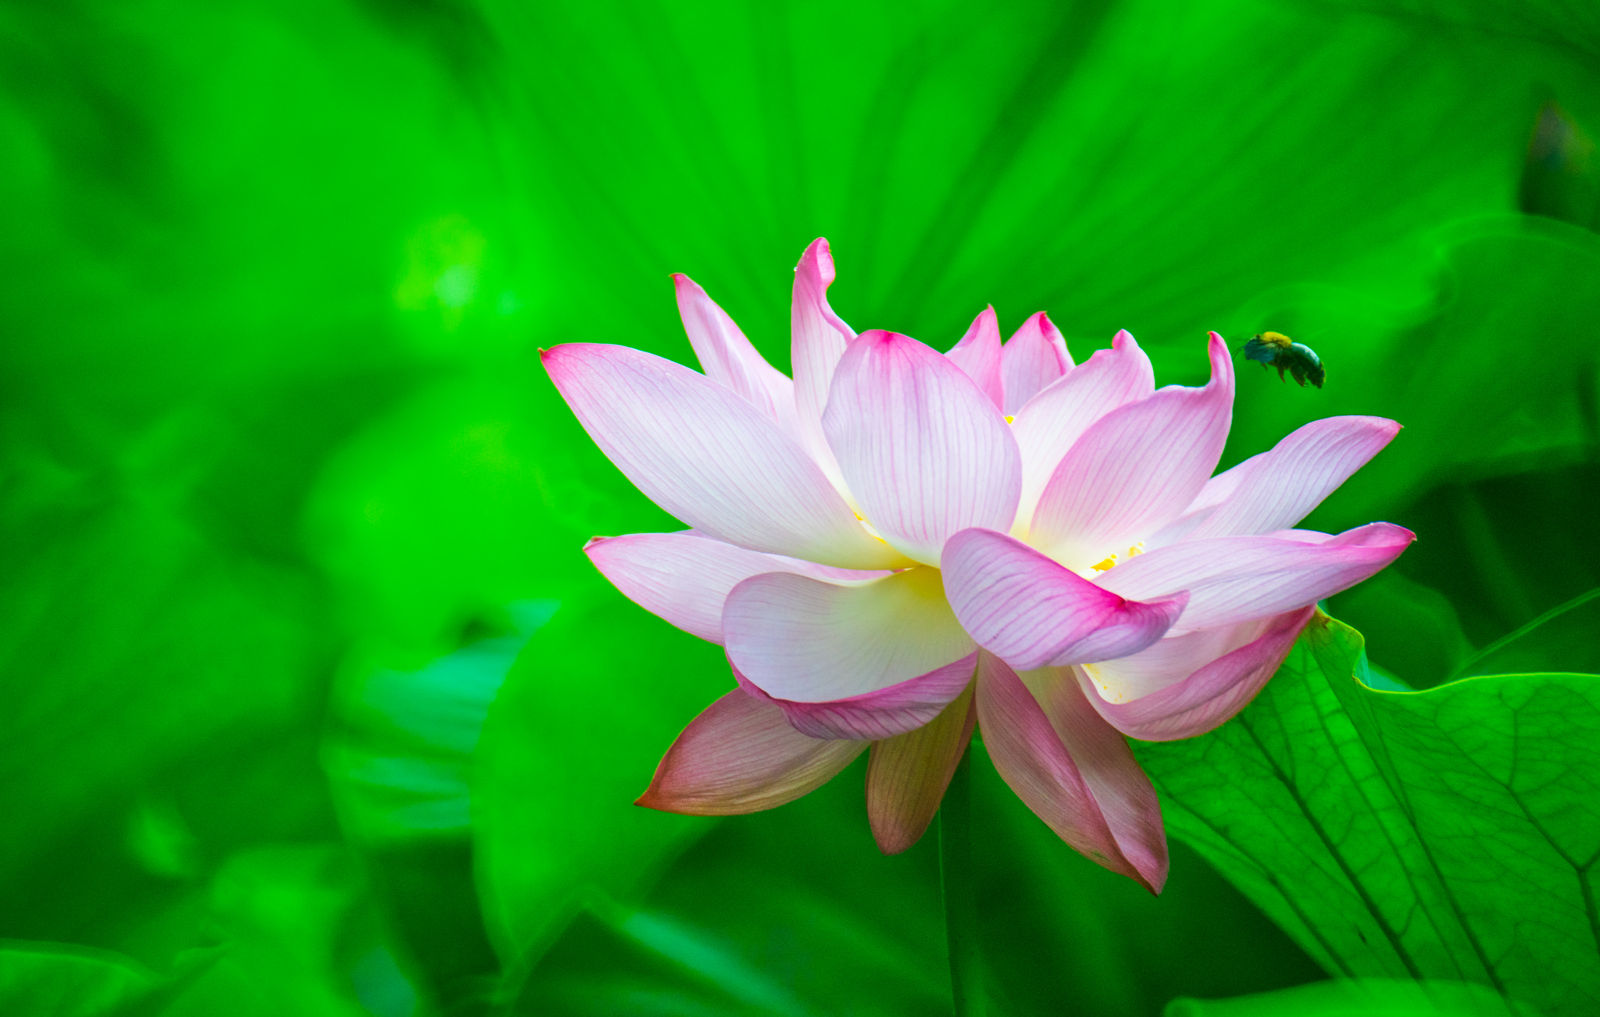 lotus flower wallpaper hd